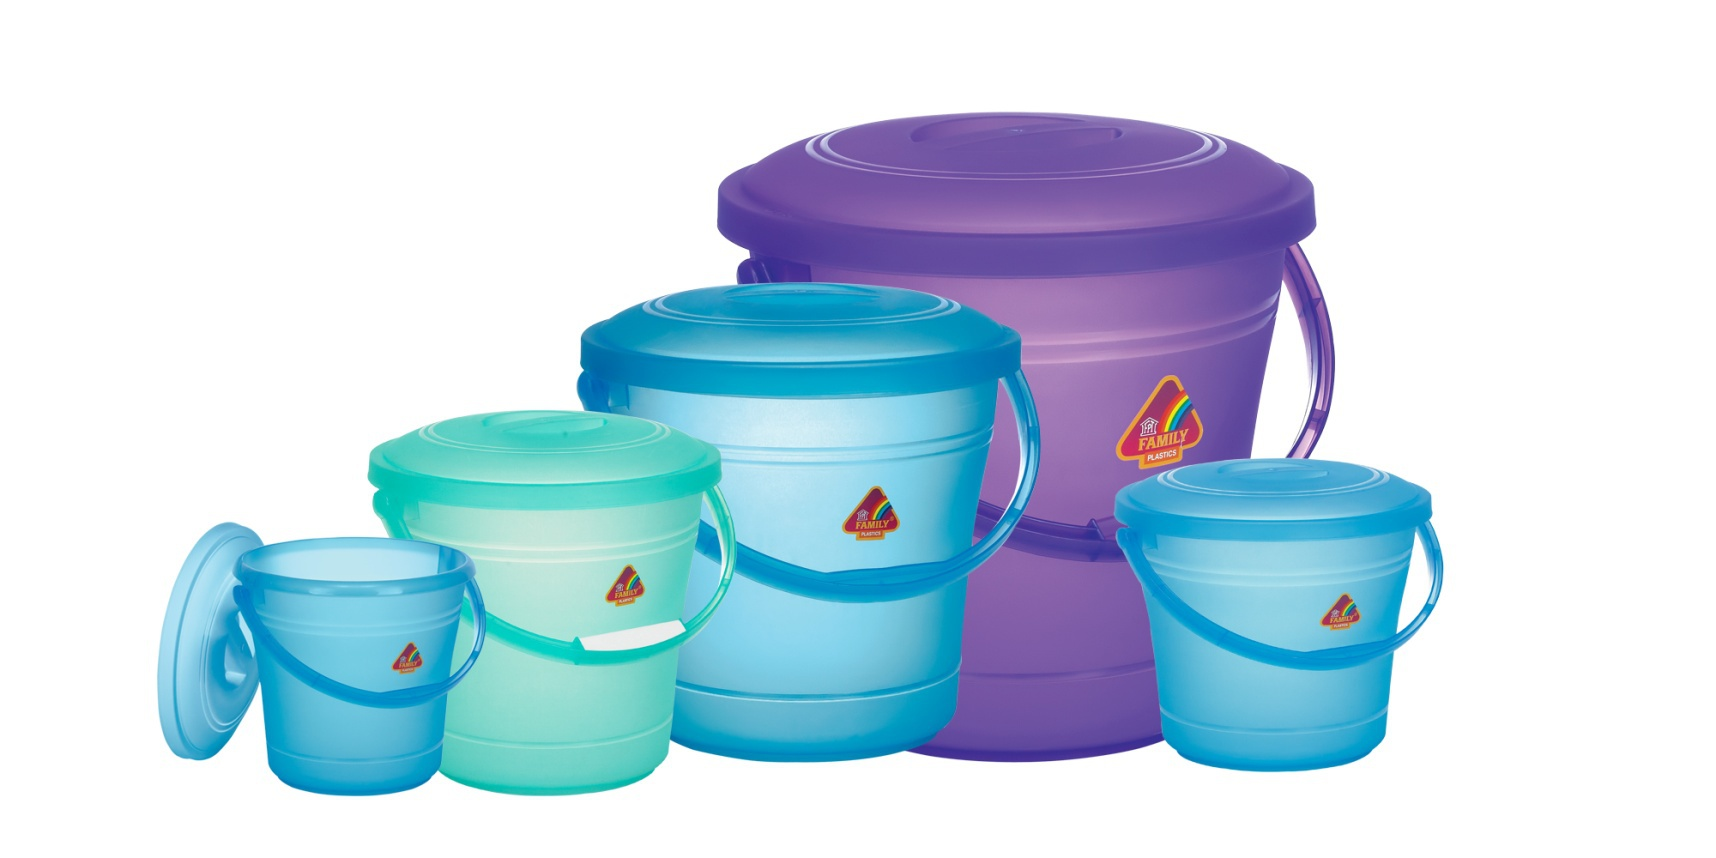 Ambiente Exhibitors Products Family Plastics And Thermoware Pvt Ltd Kitchen Queen 3pc Set